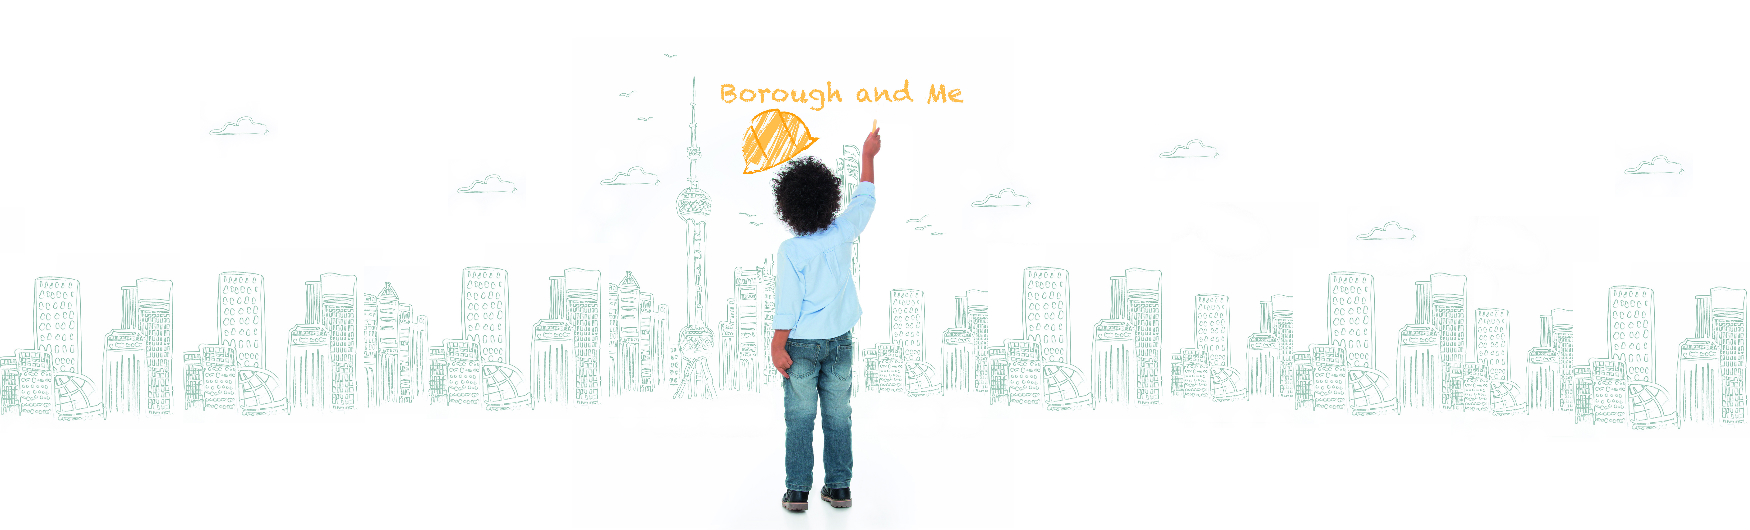 Borough and Me homework competition